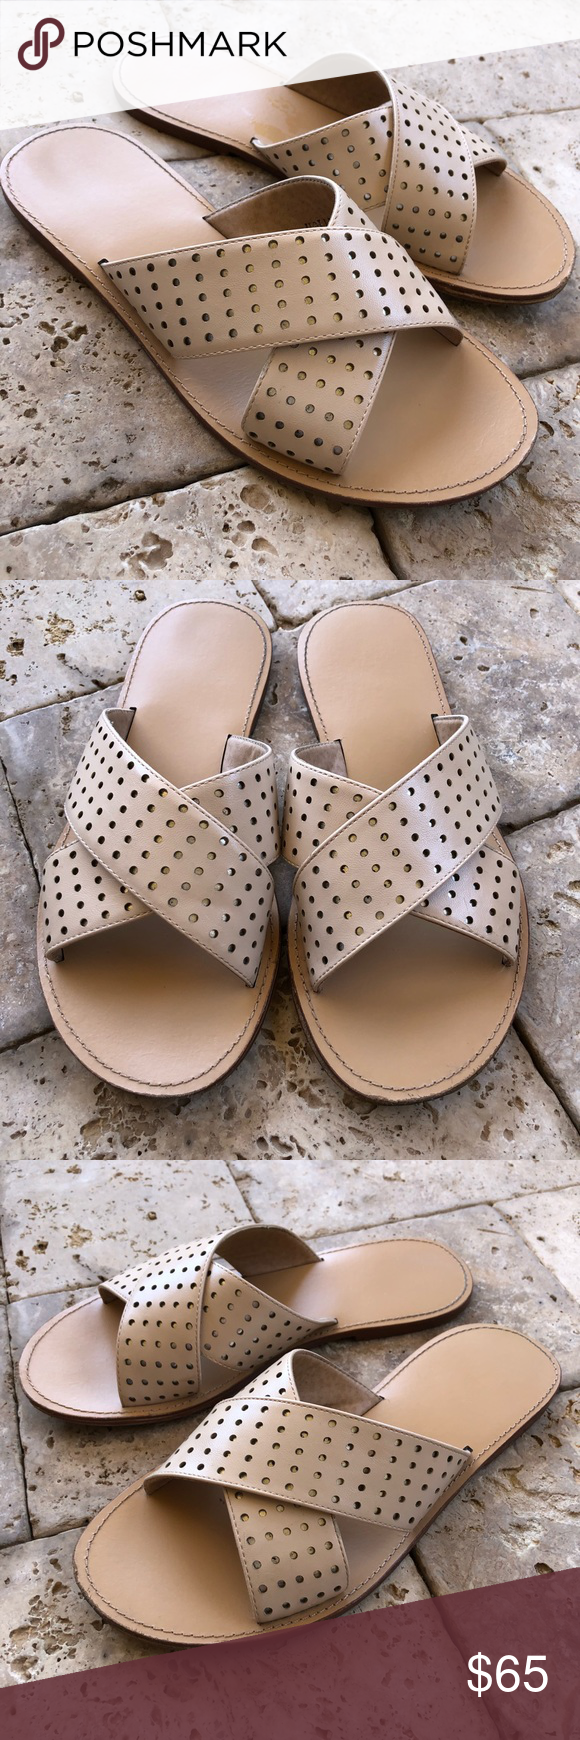 Ideal Nude Wedges Australia Png